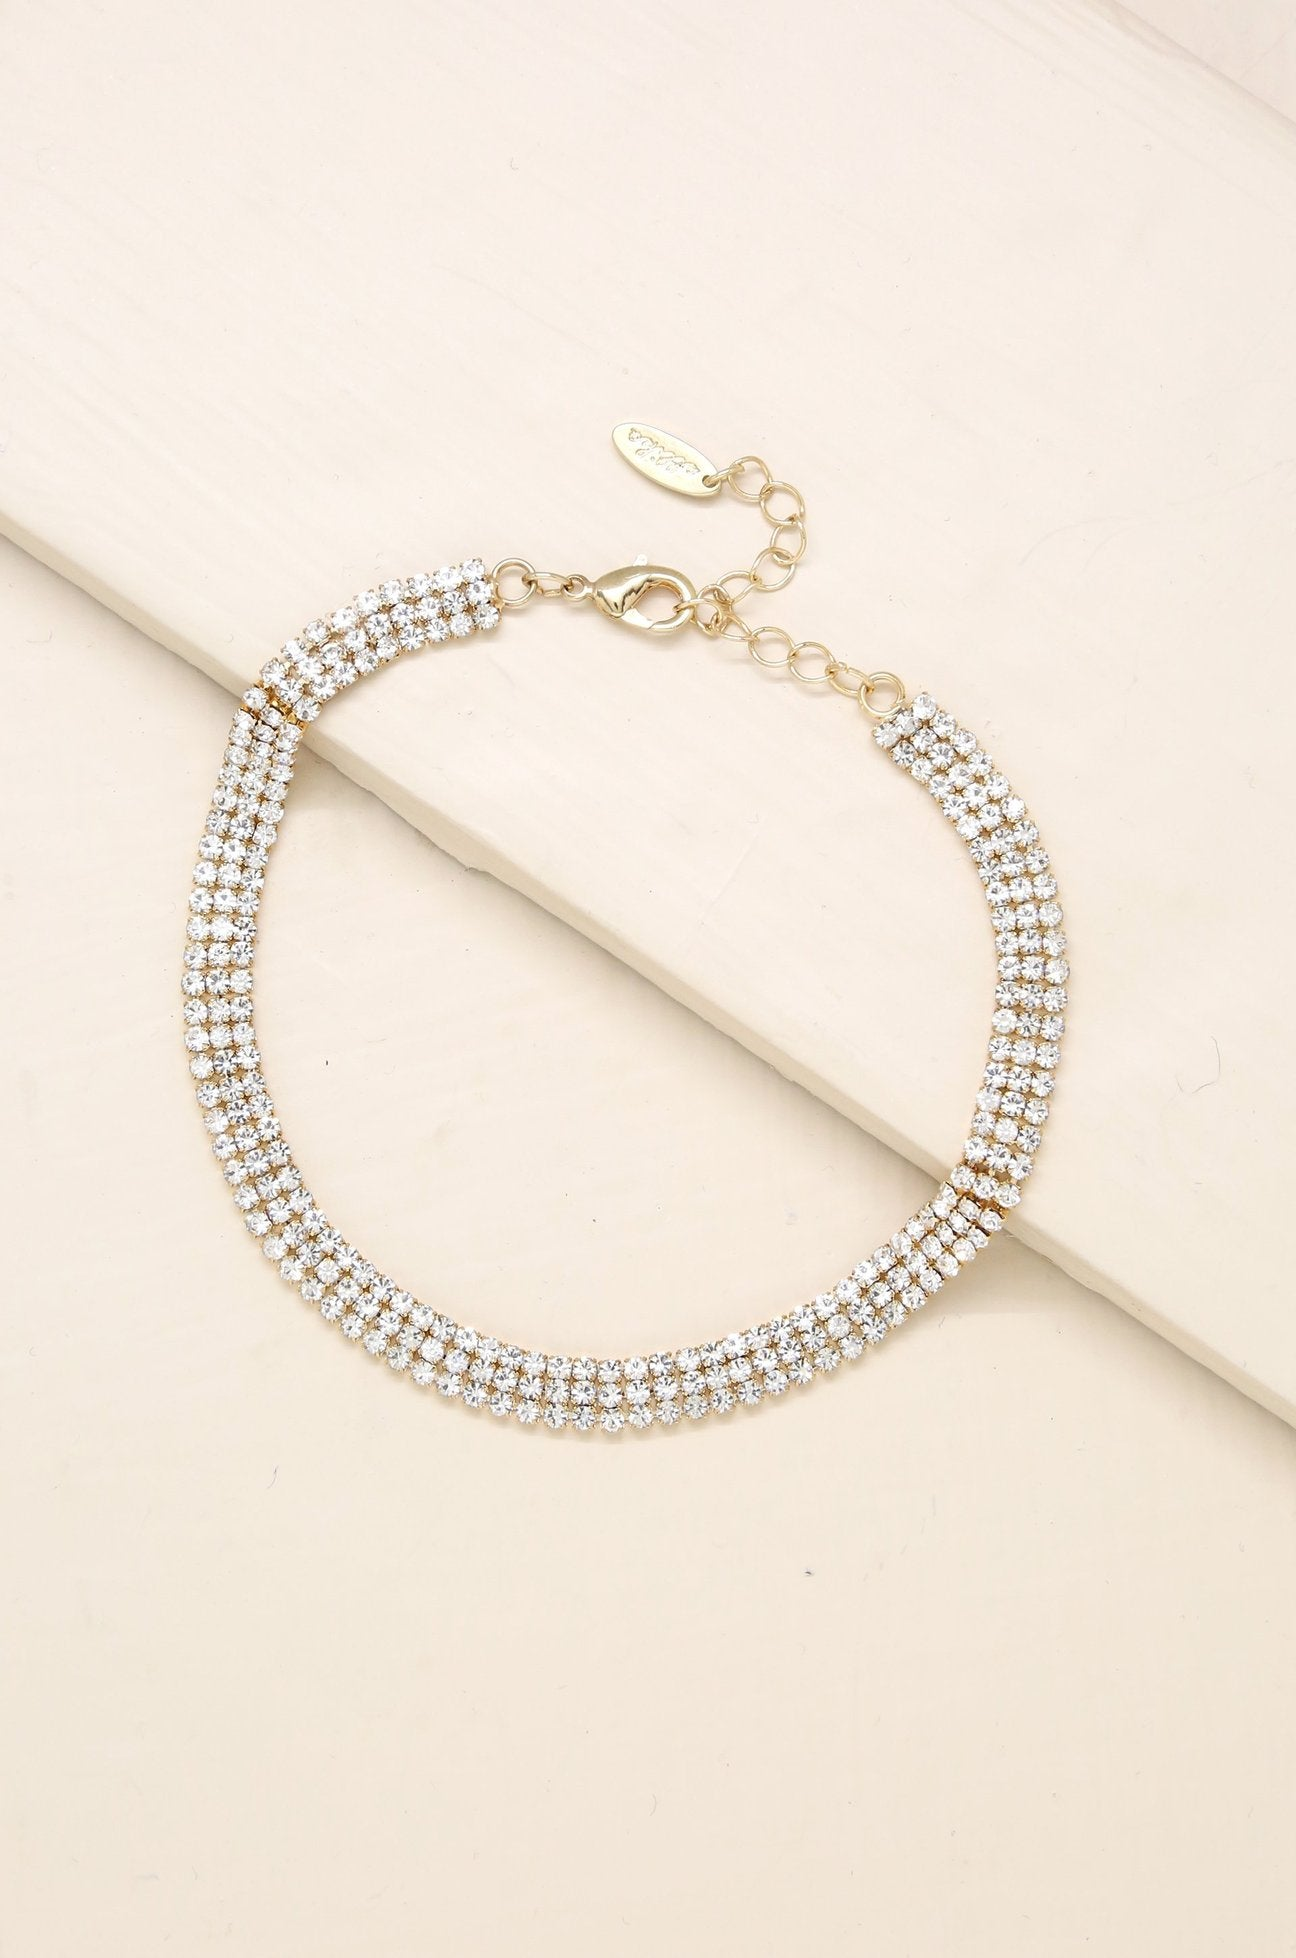 'Unexpected Sparkle' Anklet